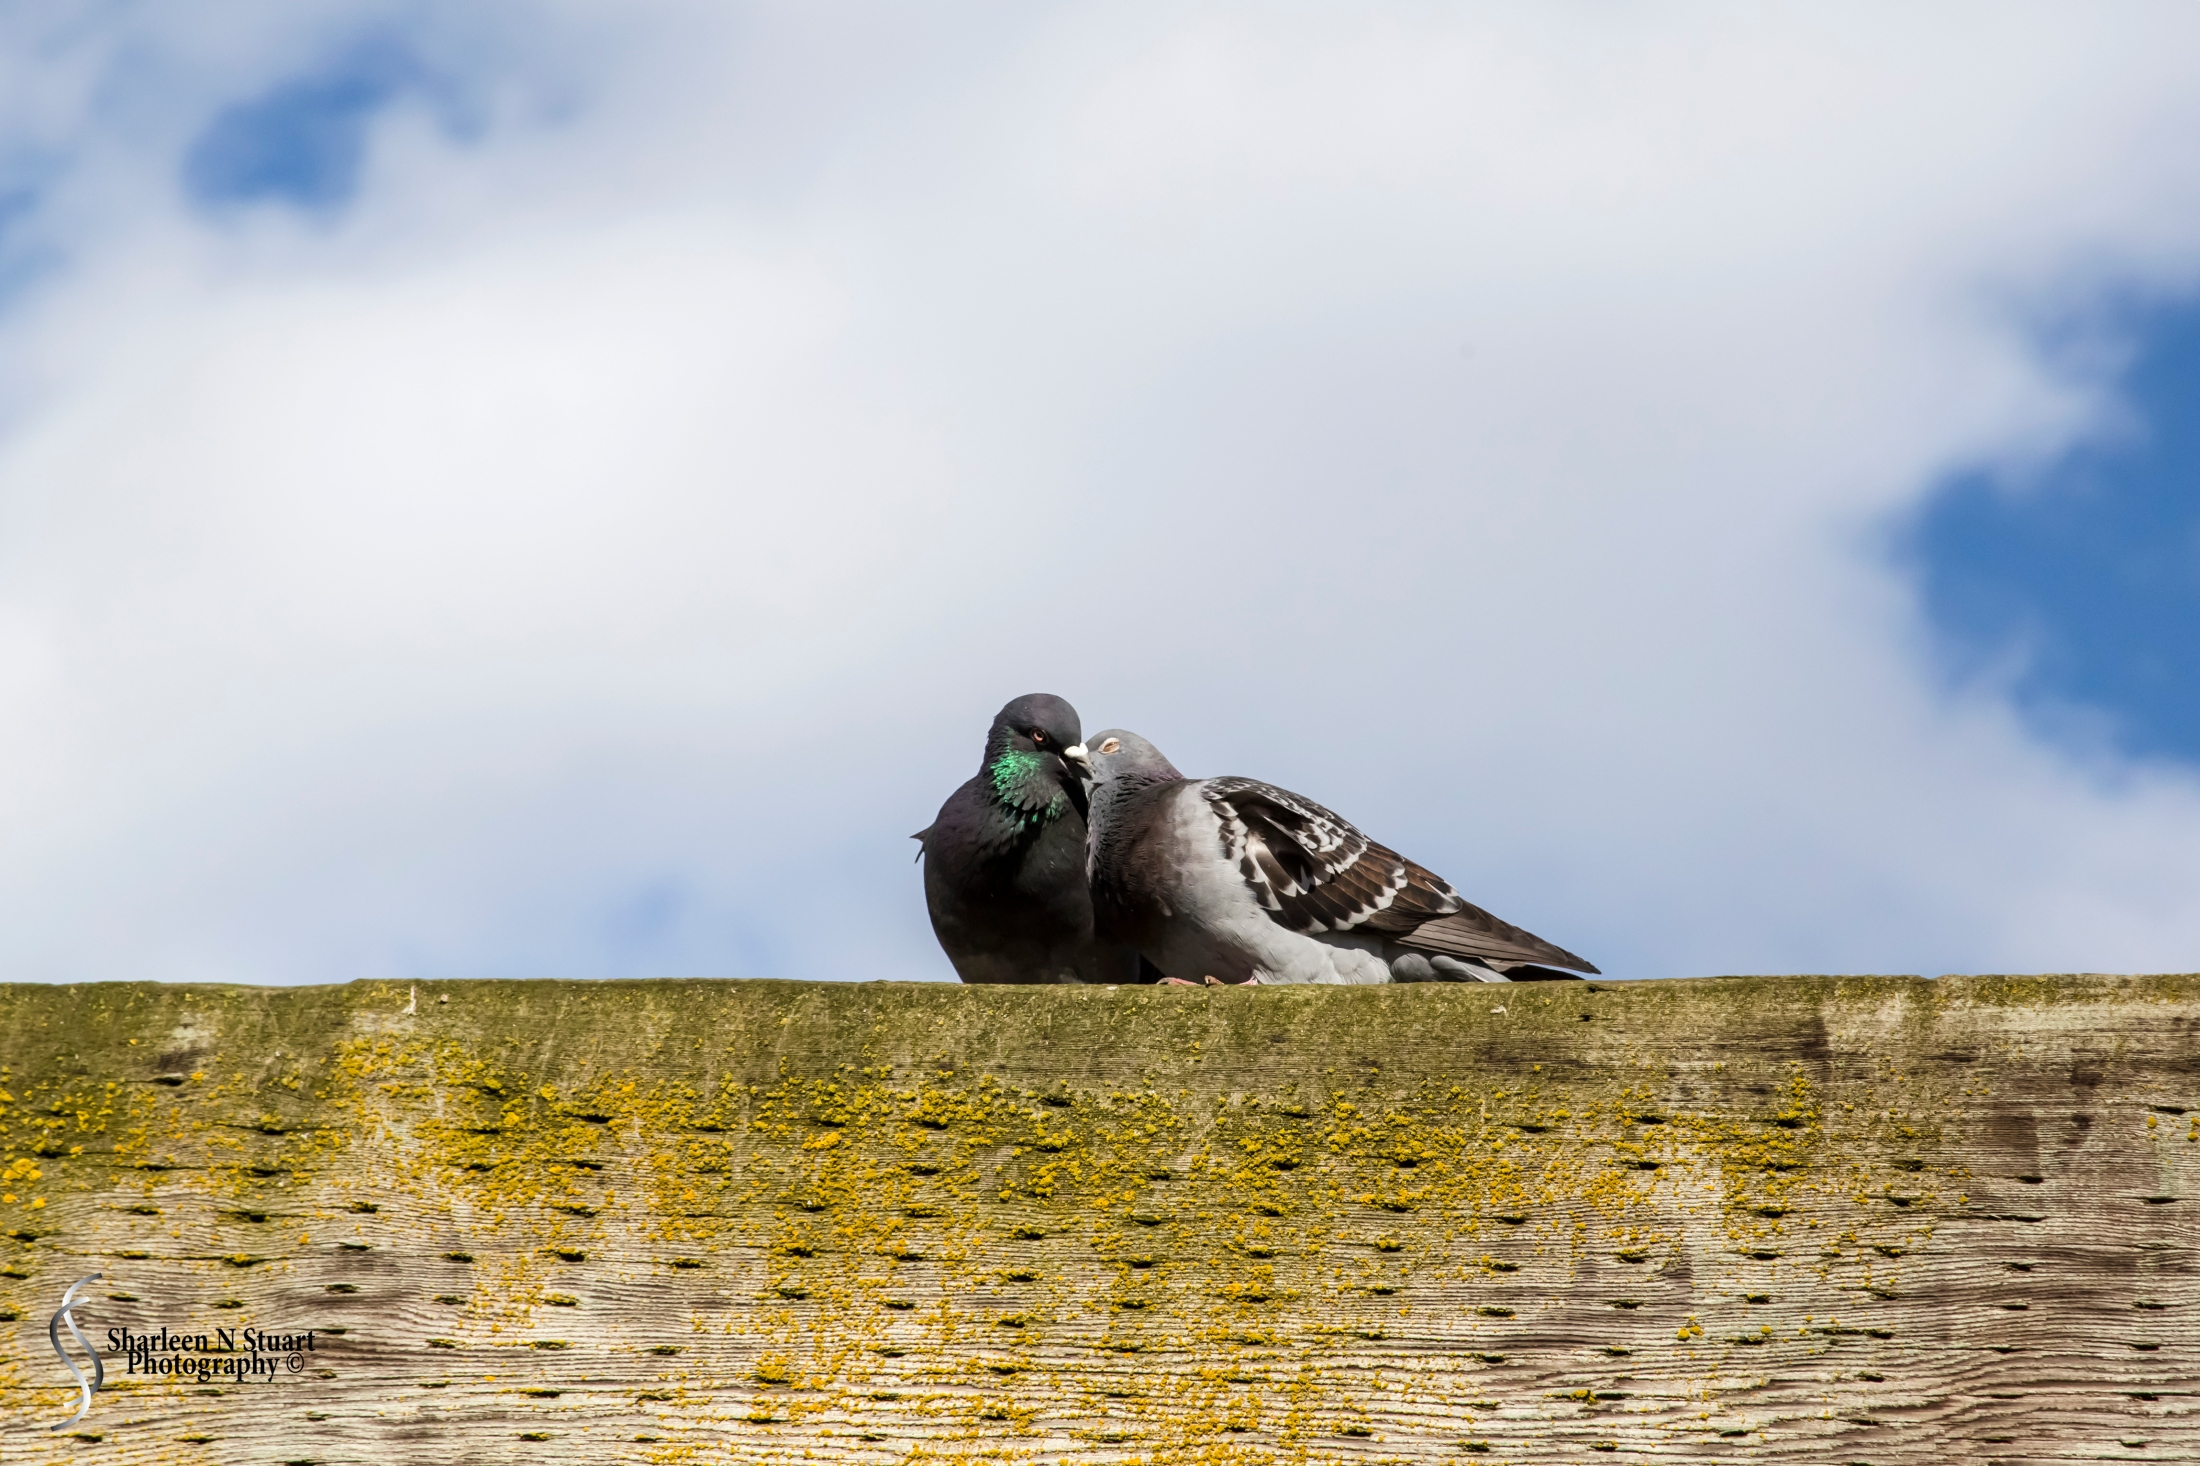 Love is in the air - even if it is just the pigeouns